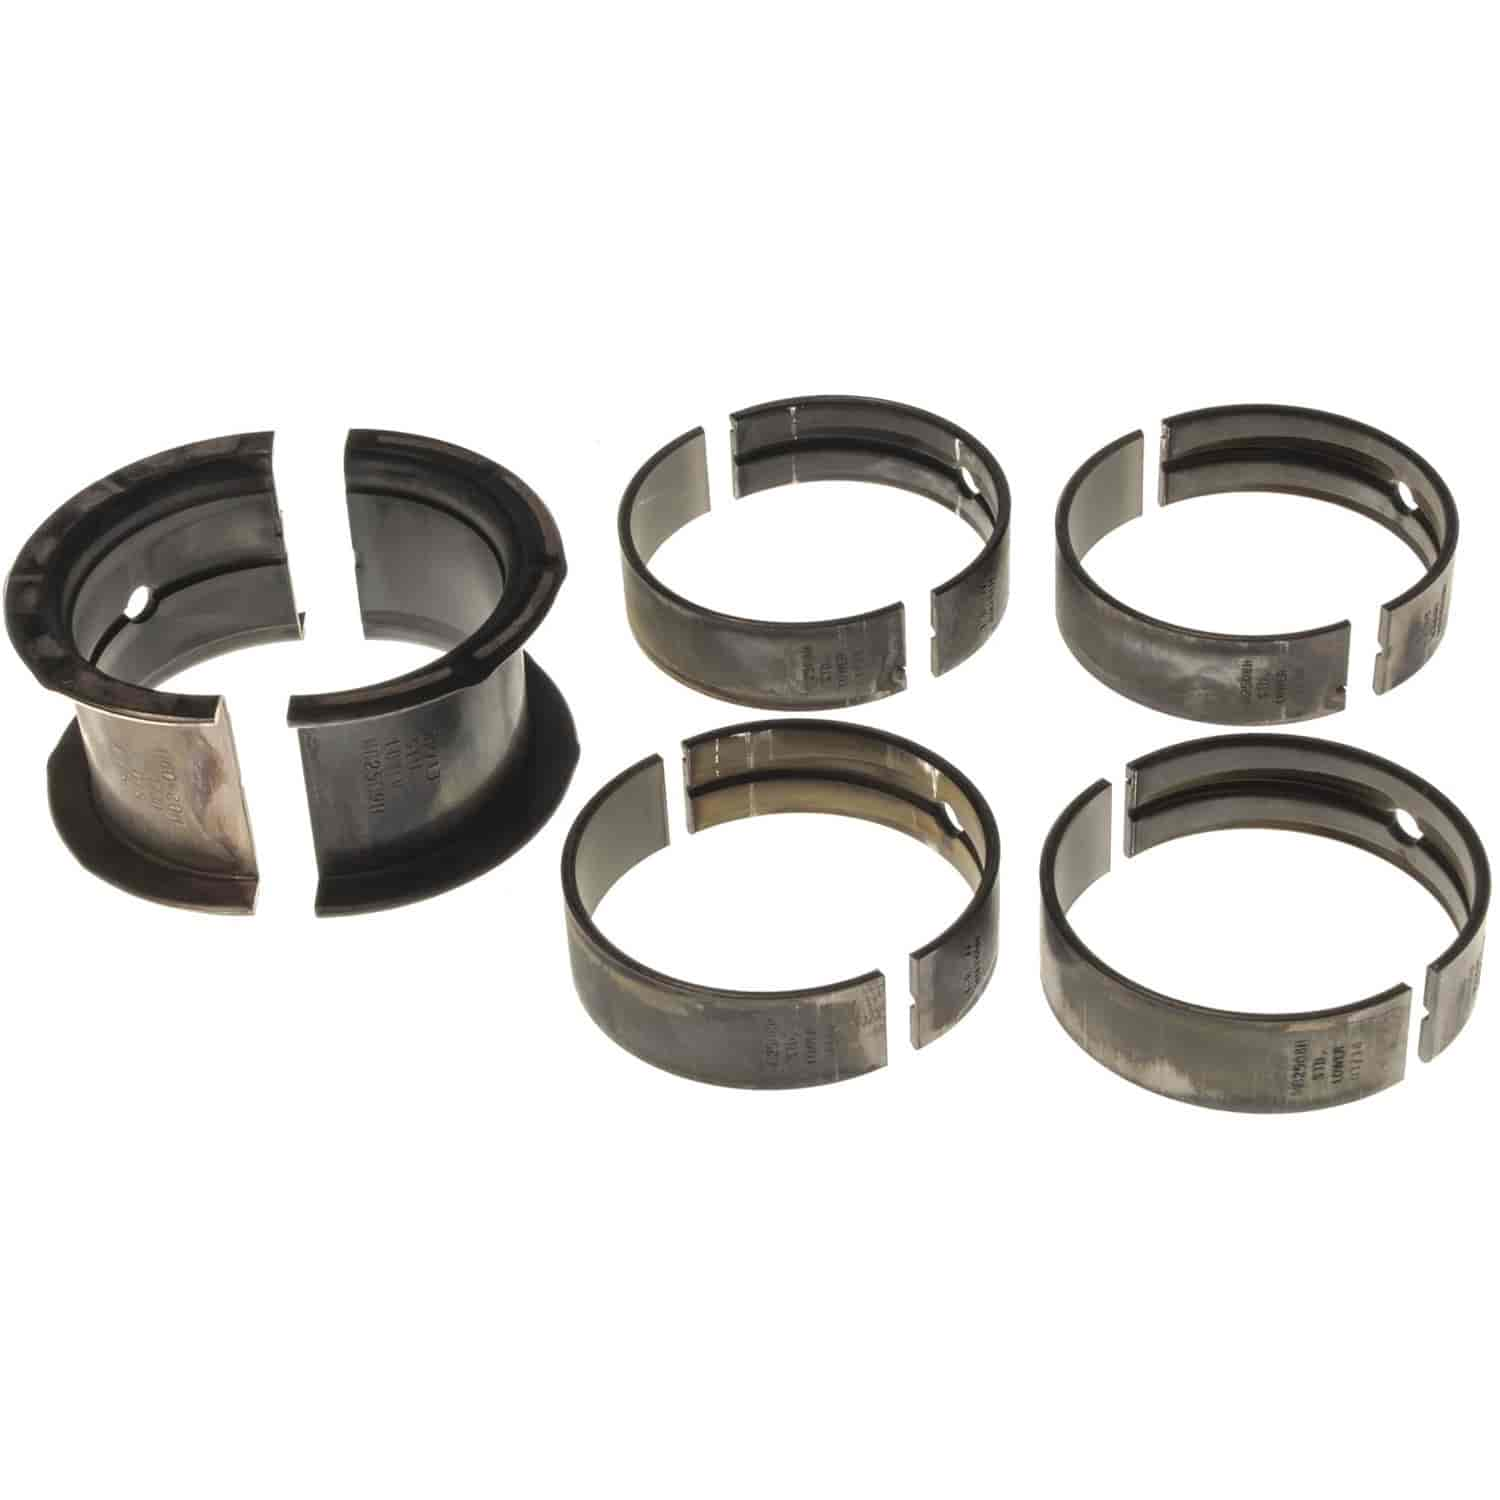 Clevite MS909H20 - Clevite 77 GM High-Performance Bearings